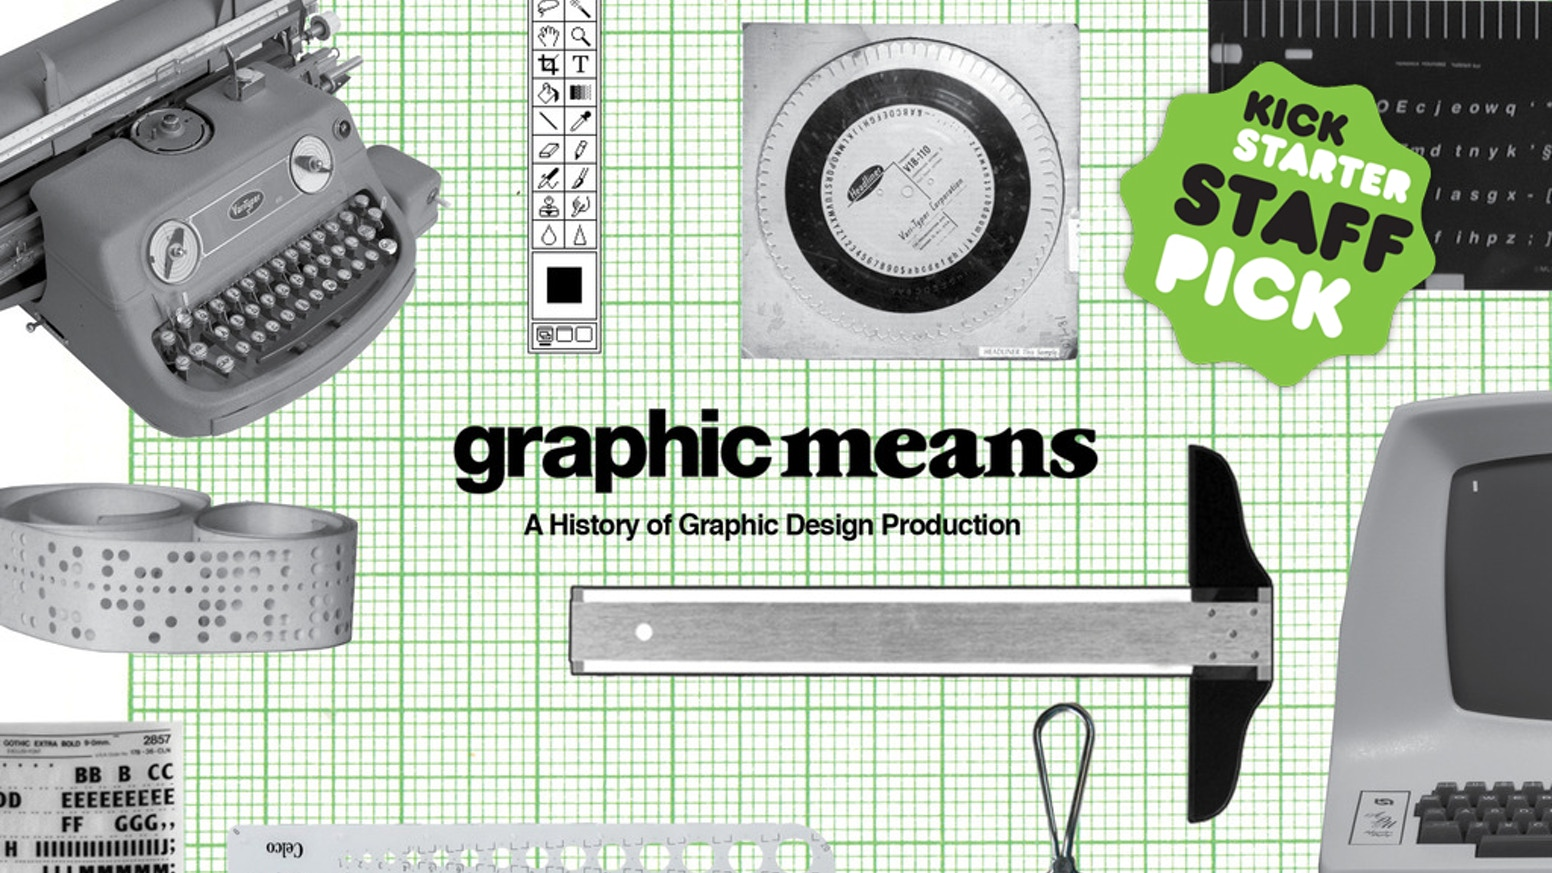 Graphic Means explores the history of graphic design production, before the advent of the desktop computer.